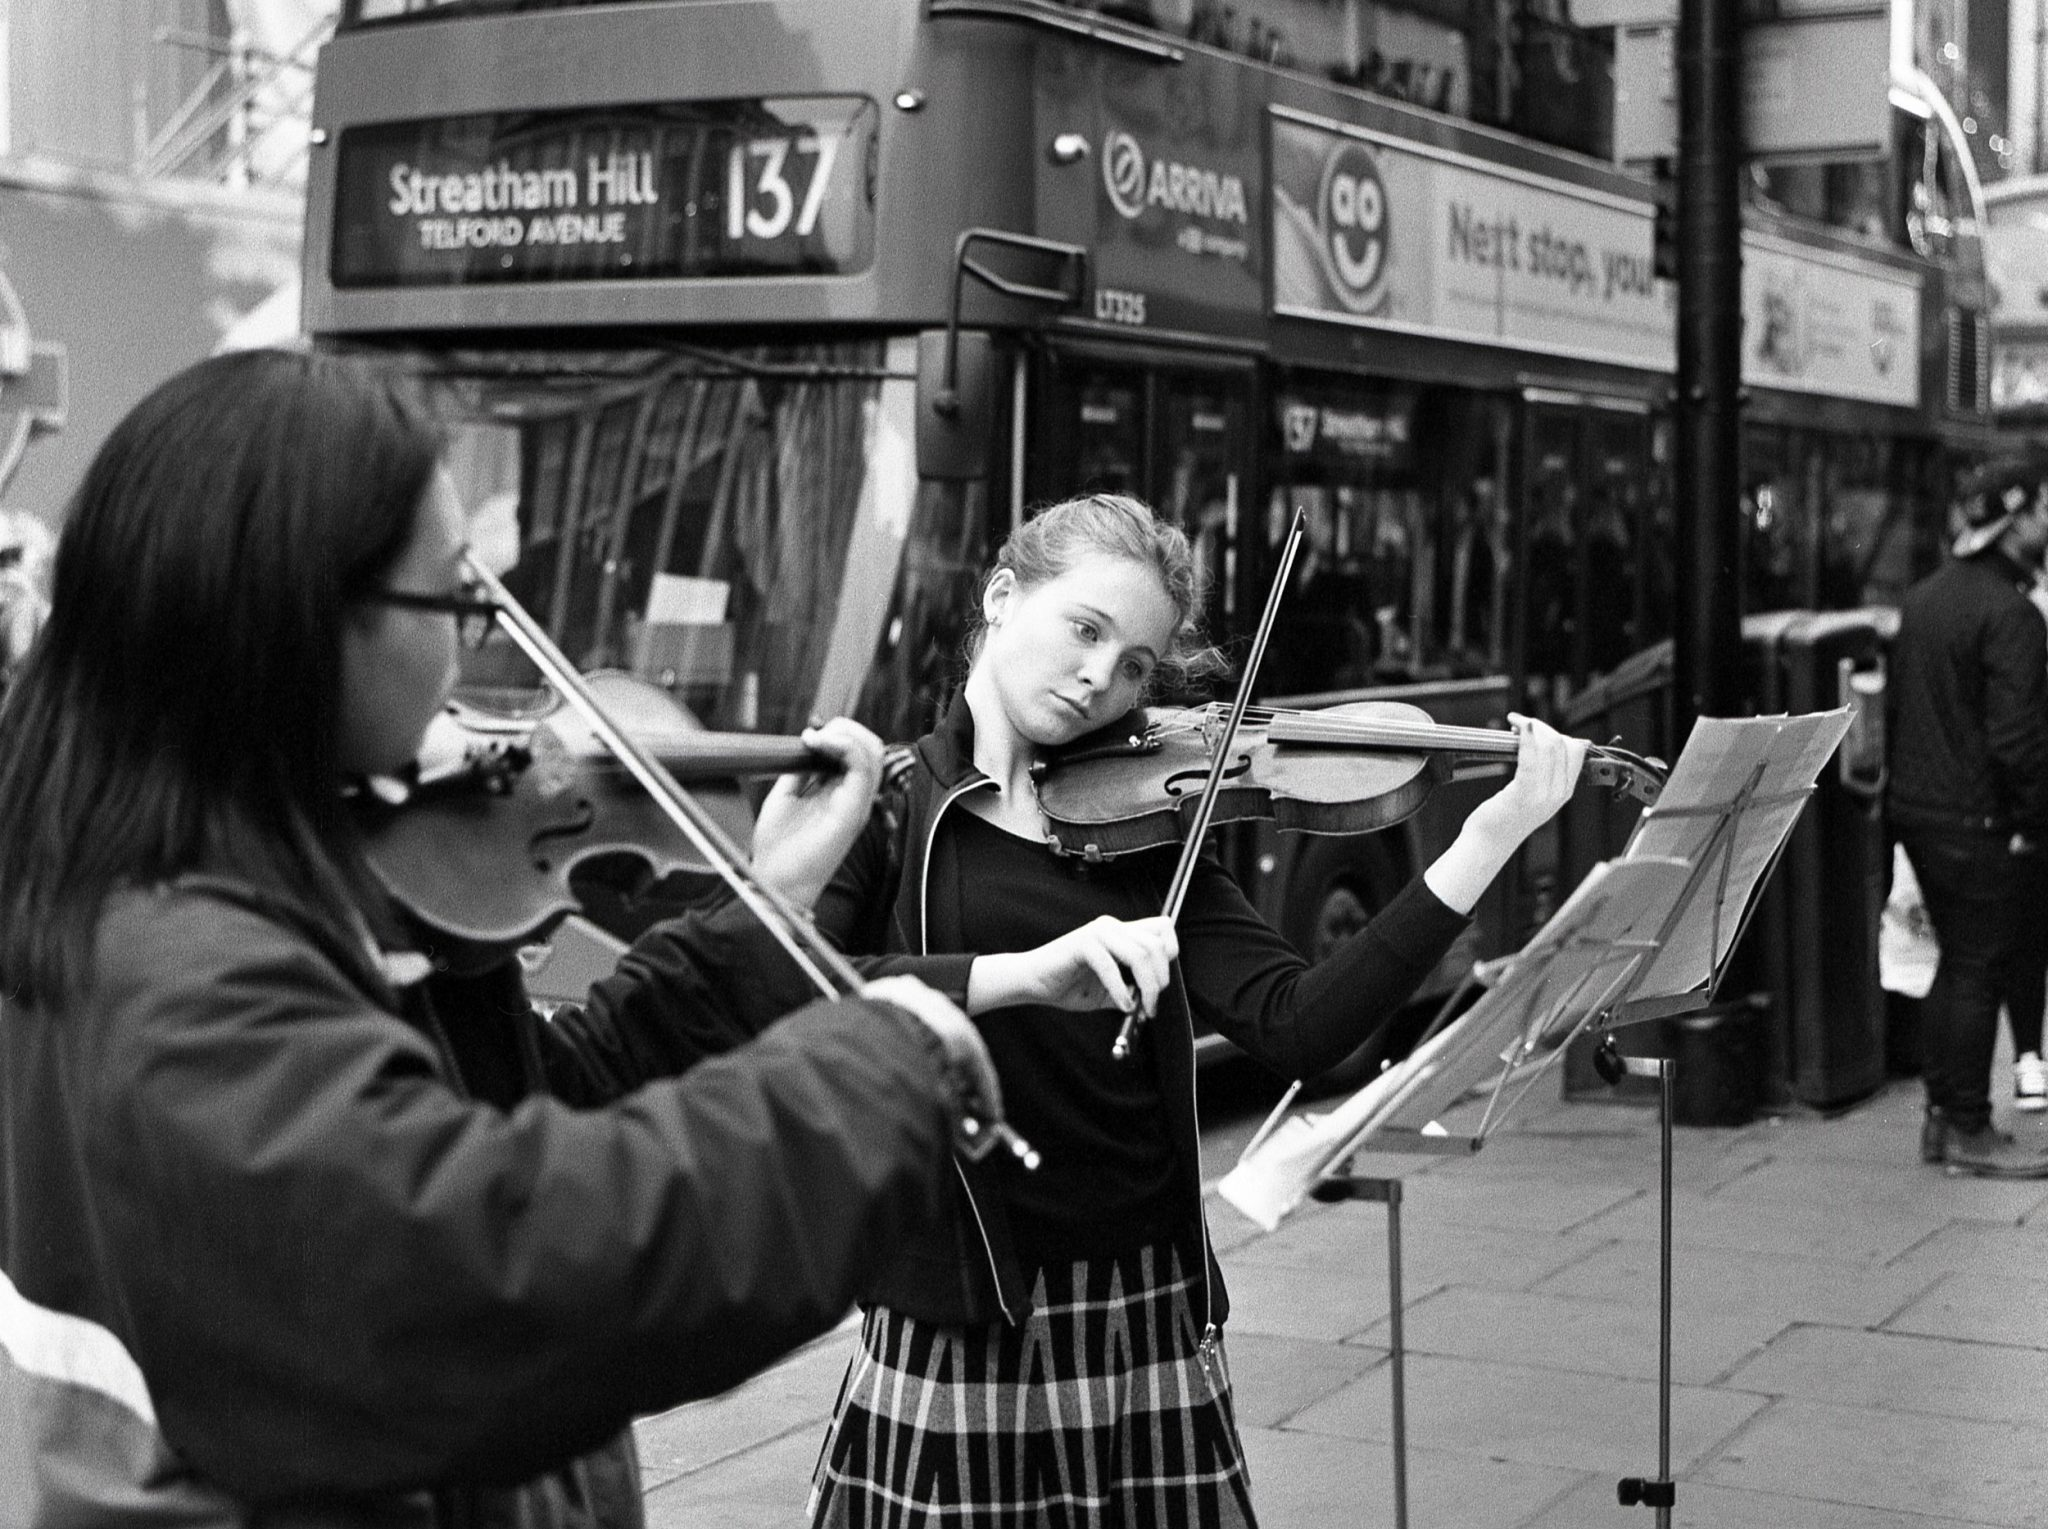 Violinists on Kodak Tri-X